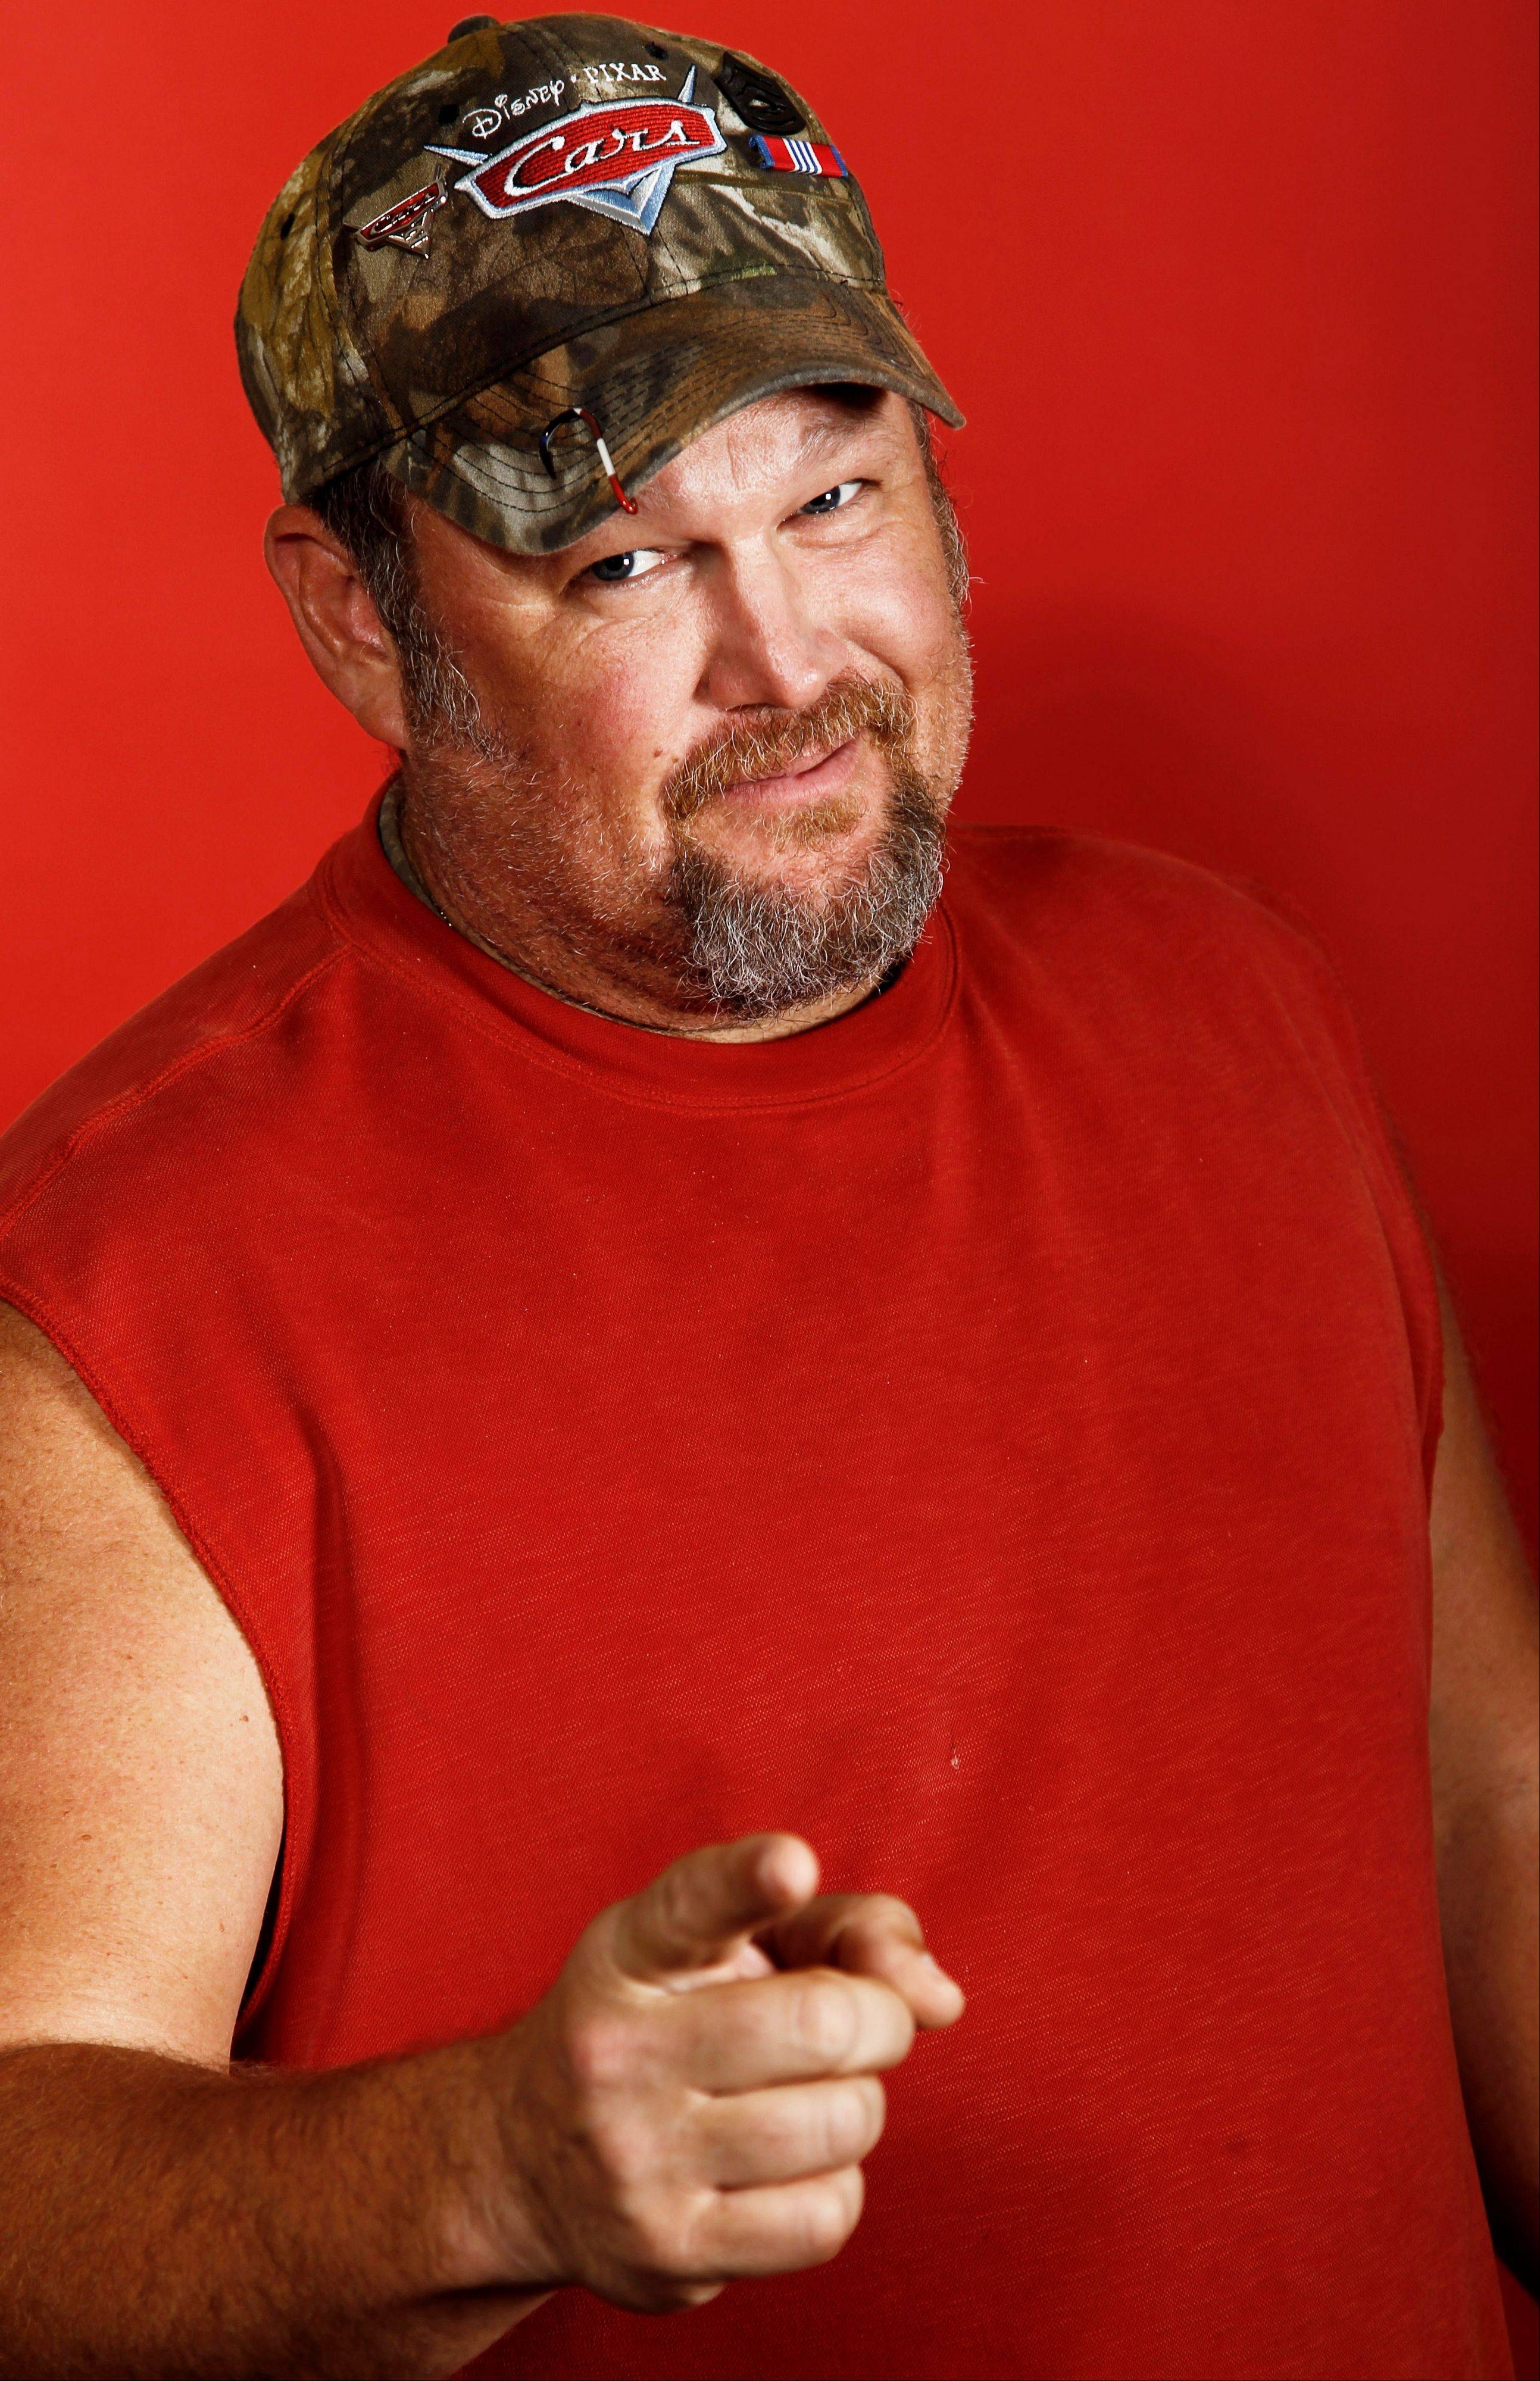 Actor Dan Whitney, also known as Larry the Cable Guy, performs two comedy shows at the Paramount Theatre in Aurora on Saturday, Oct. 19.